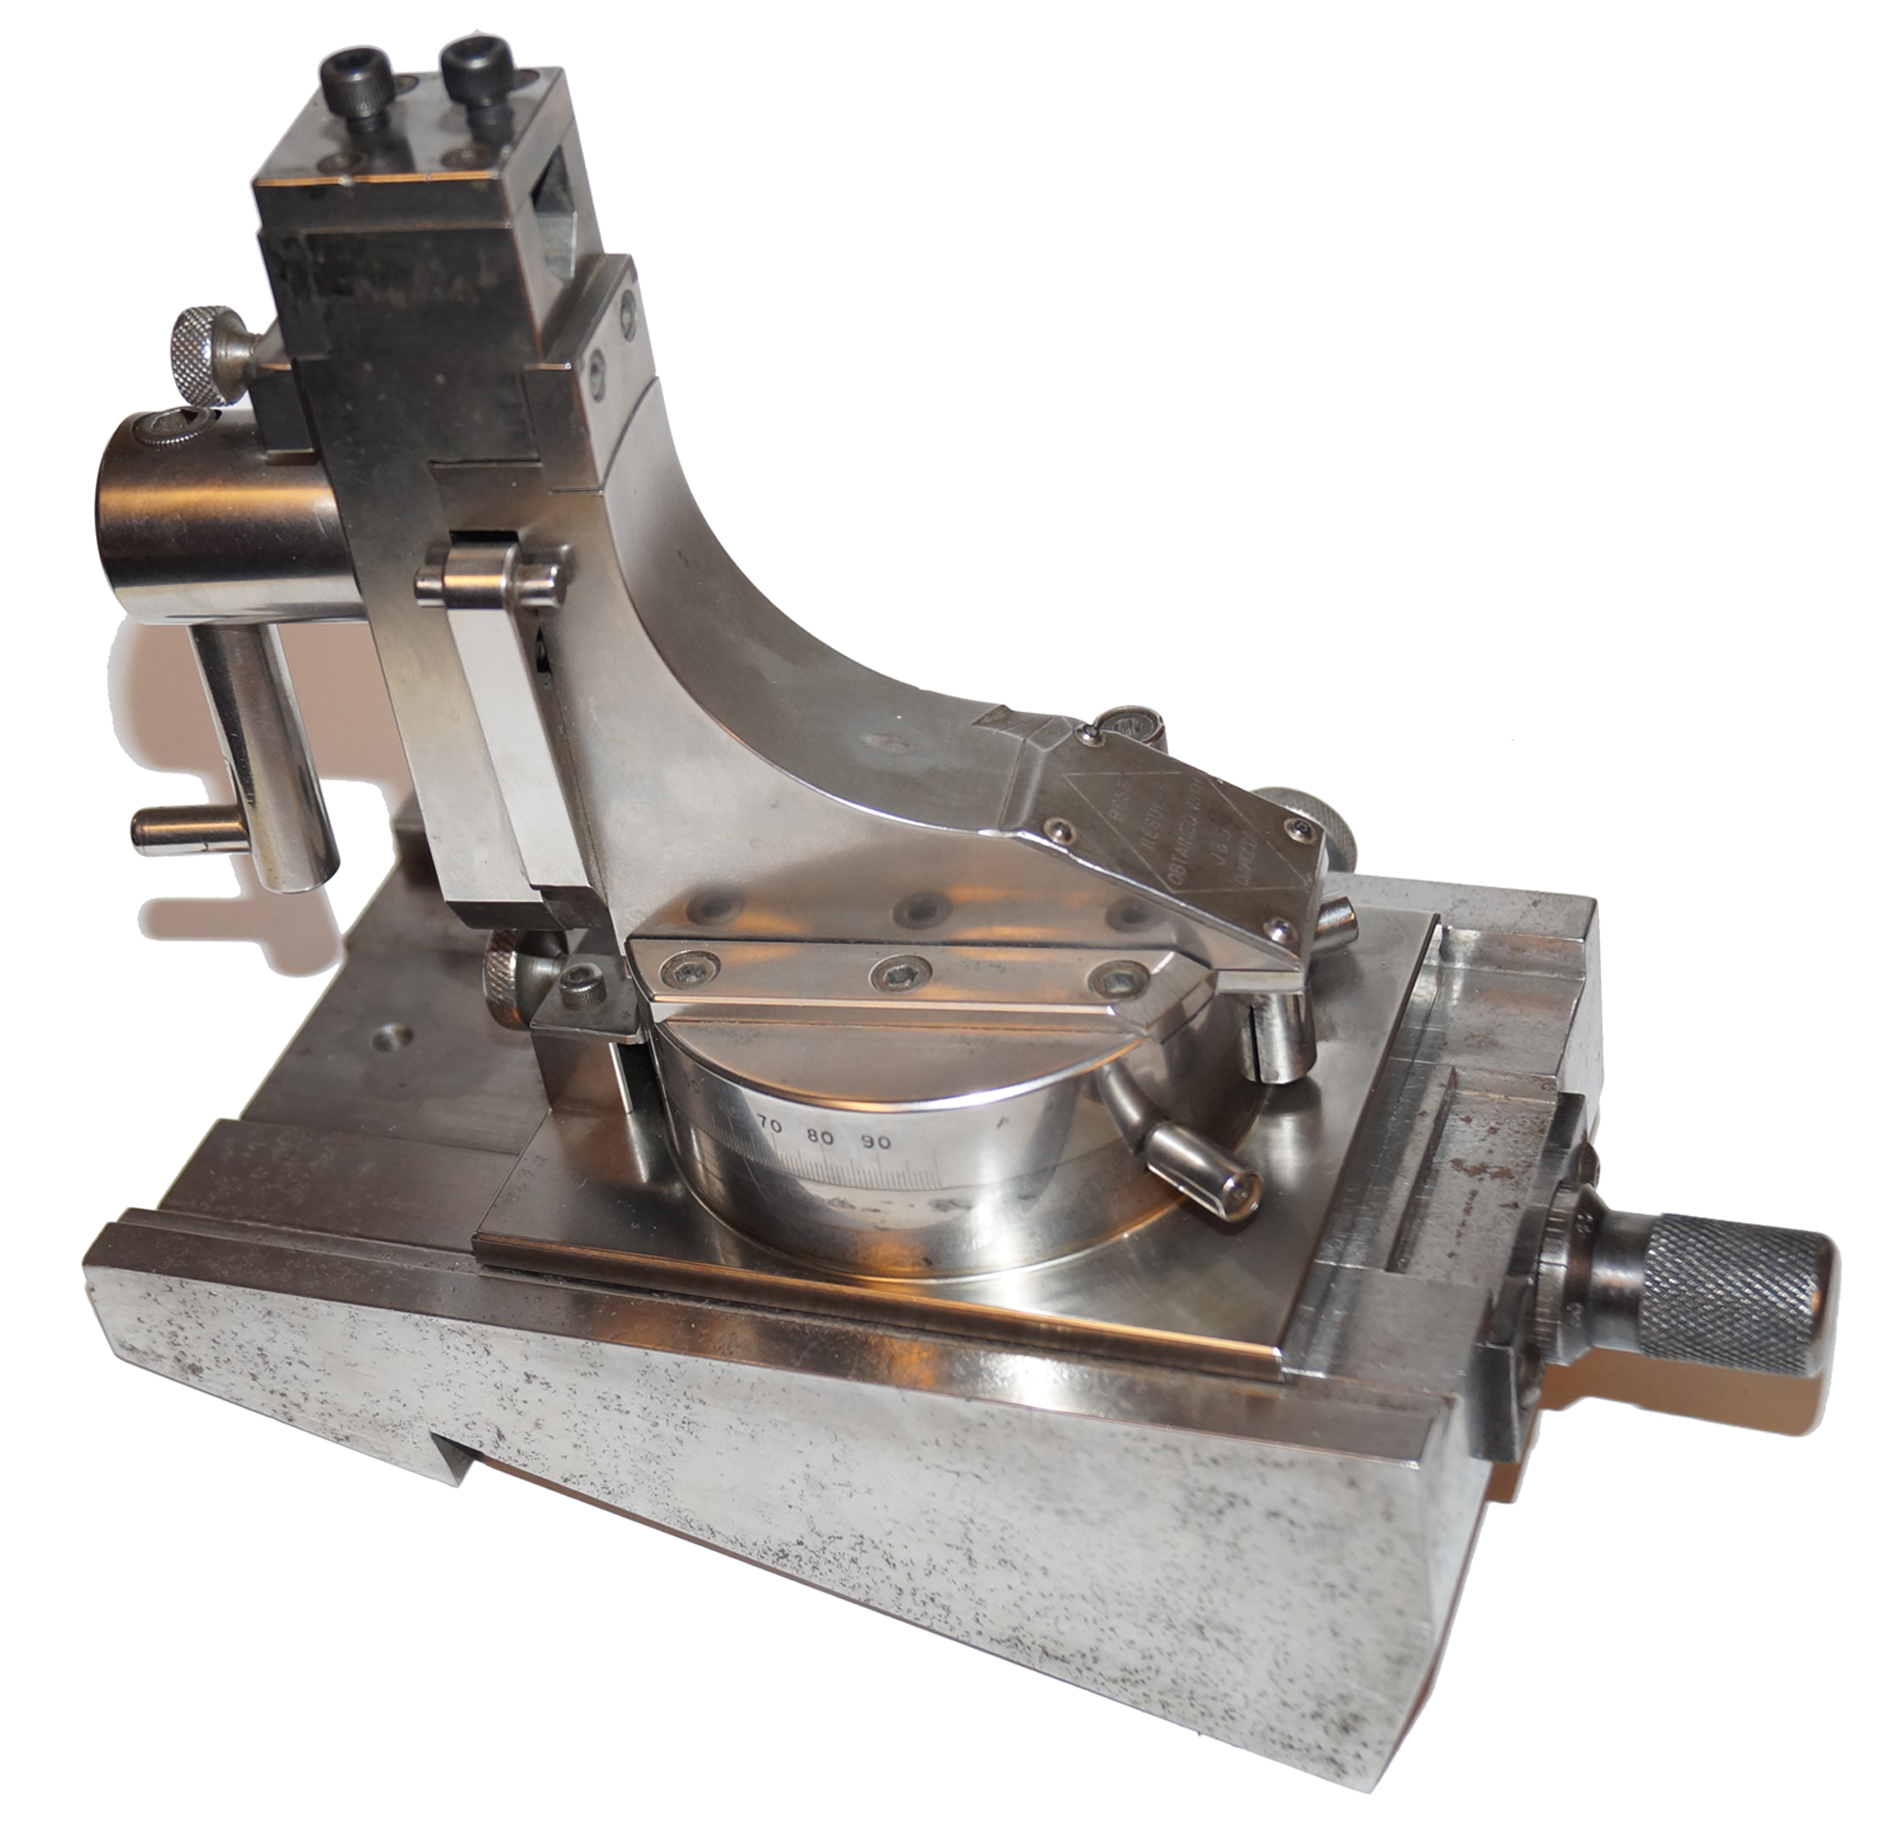 Fluidmotion Grinding Wheel Dresser with solid angle base